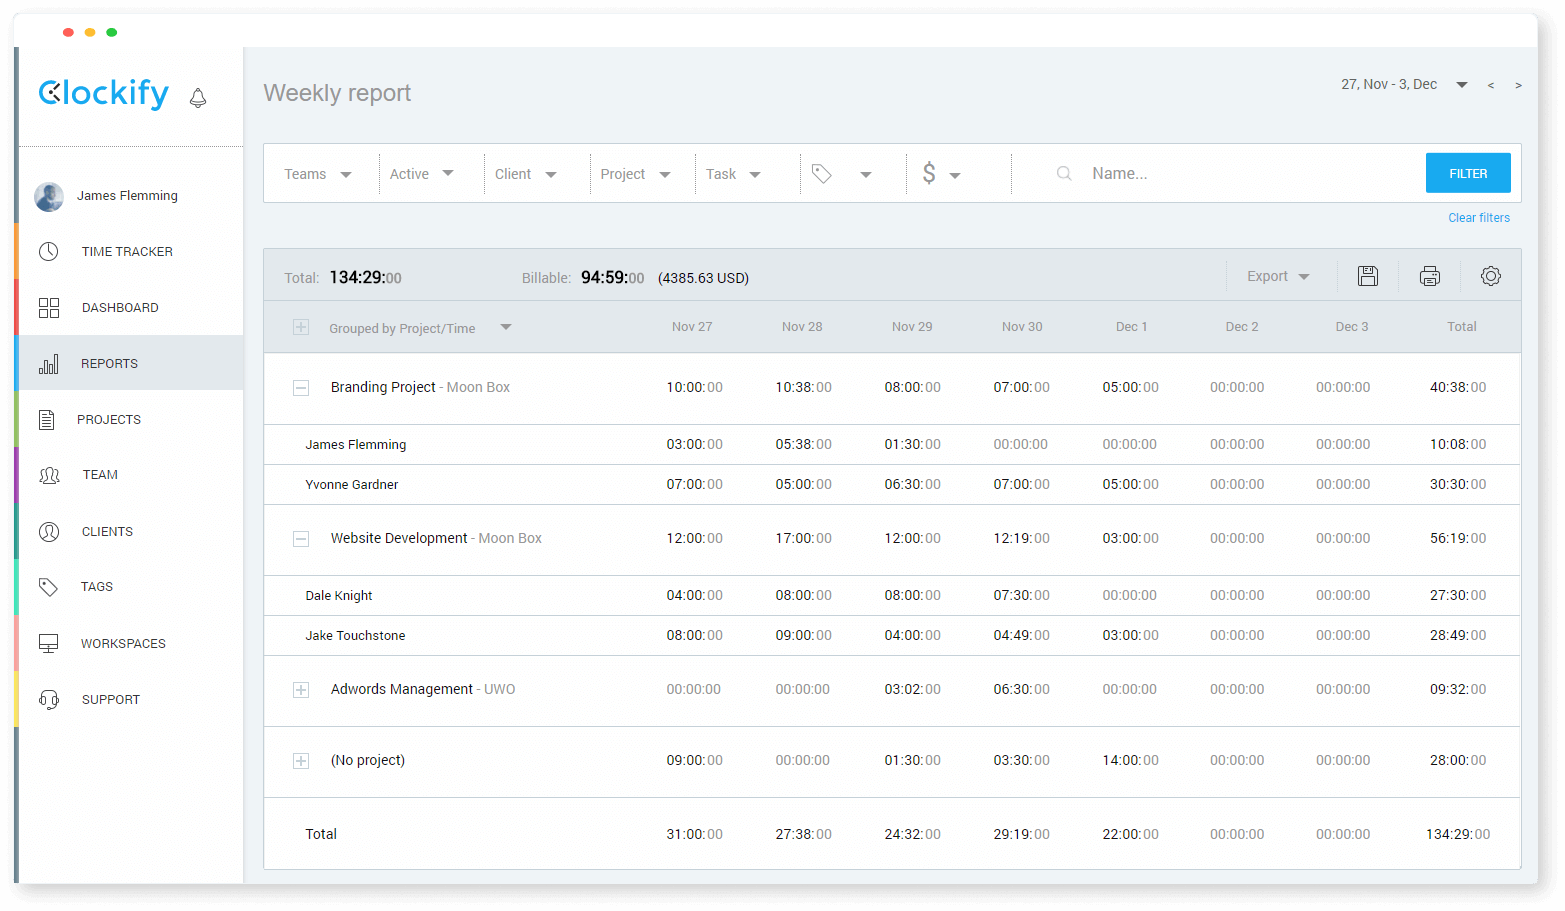 Weekly time report for each user in Clockify